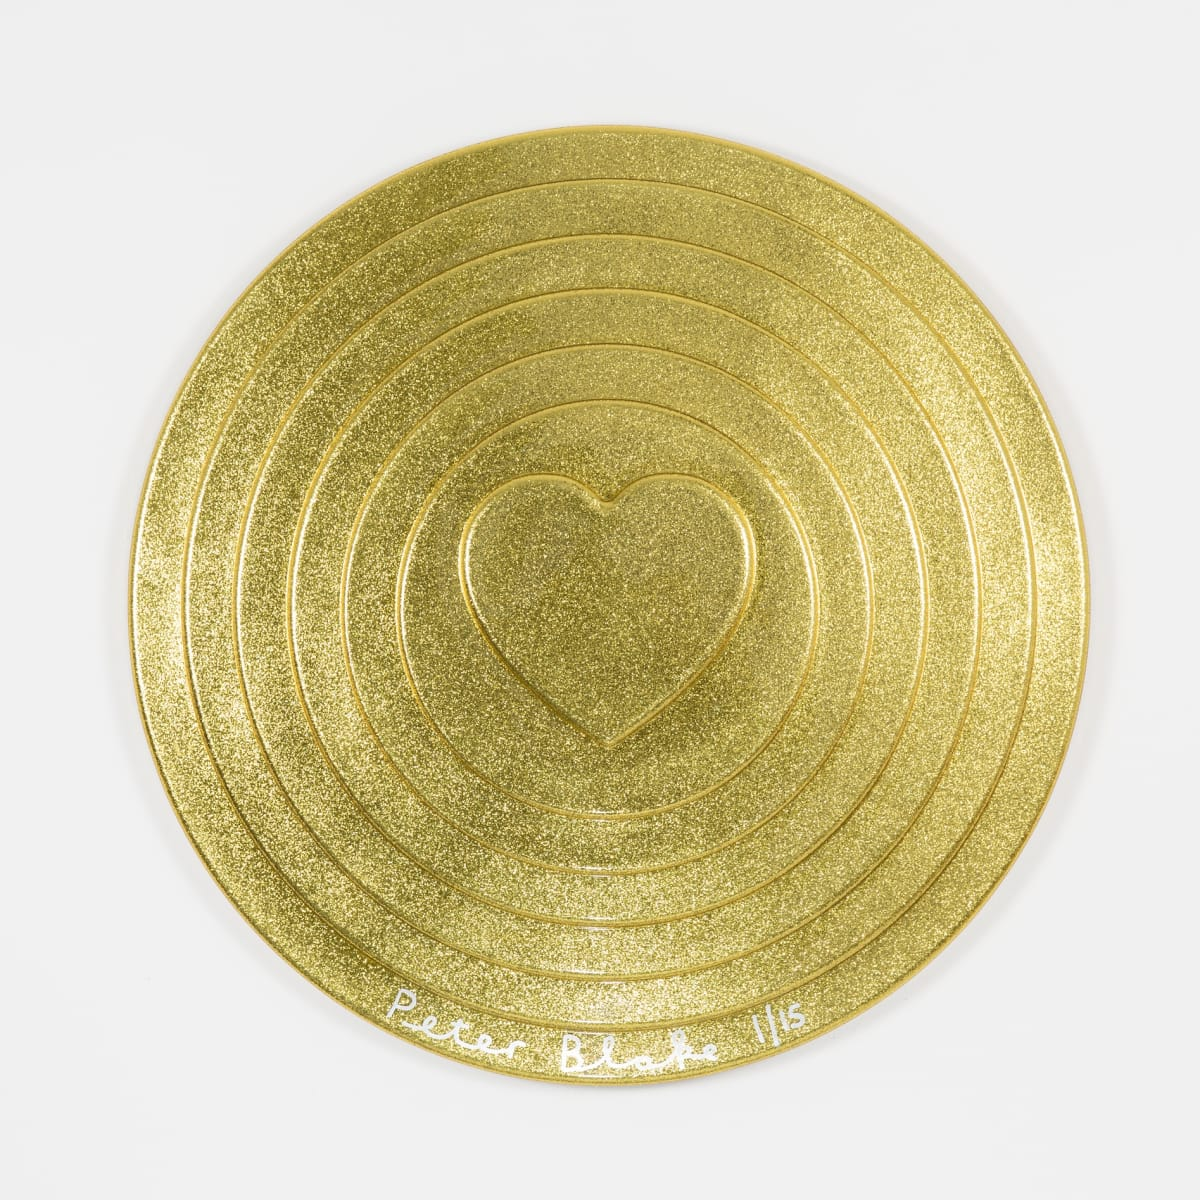 Peter Blake Gold Target (metal flake), 2017 Vacuum formed plastic, paint 69 x 69 x 10 cm Edition of 15 Signed and numbered